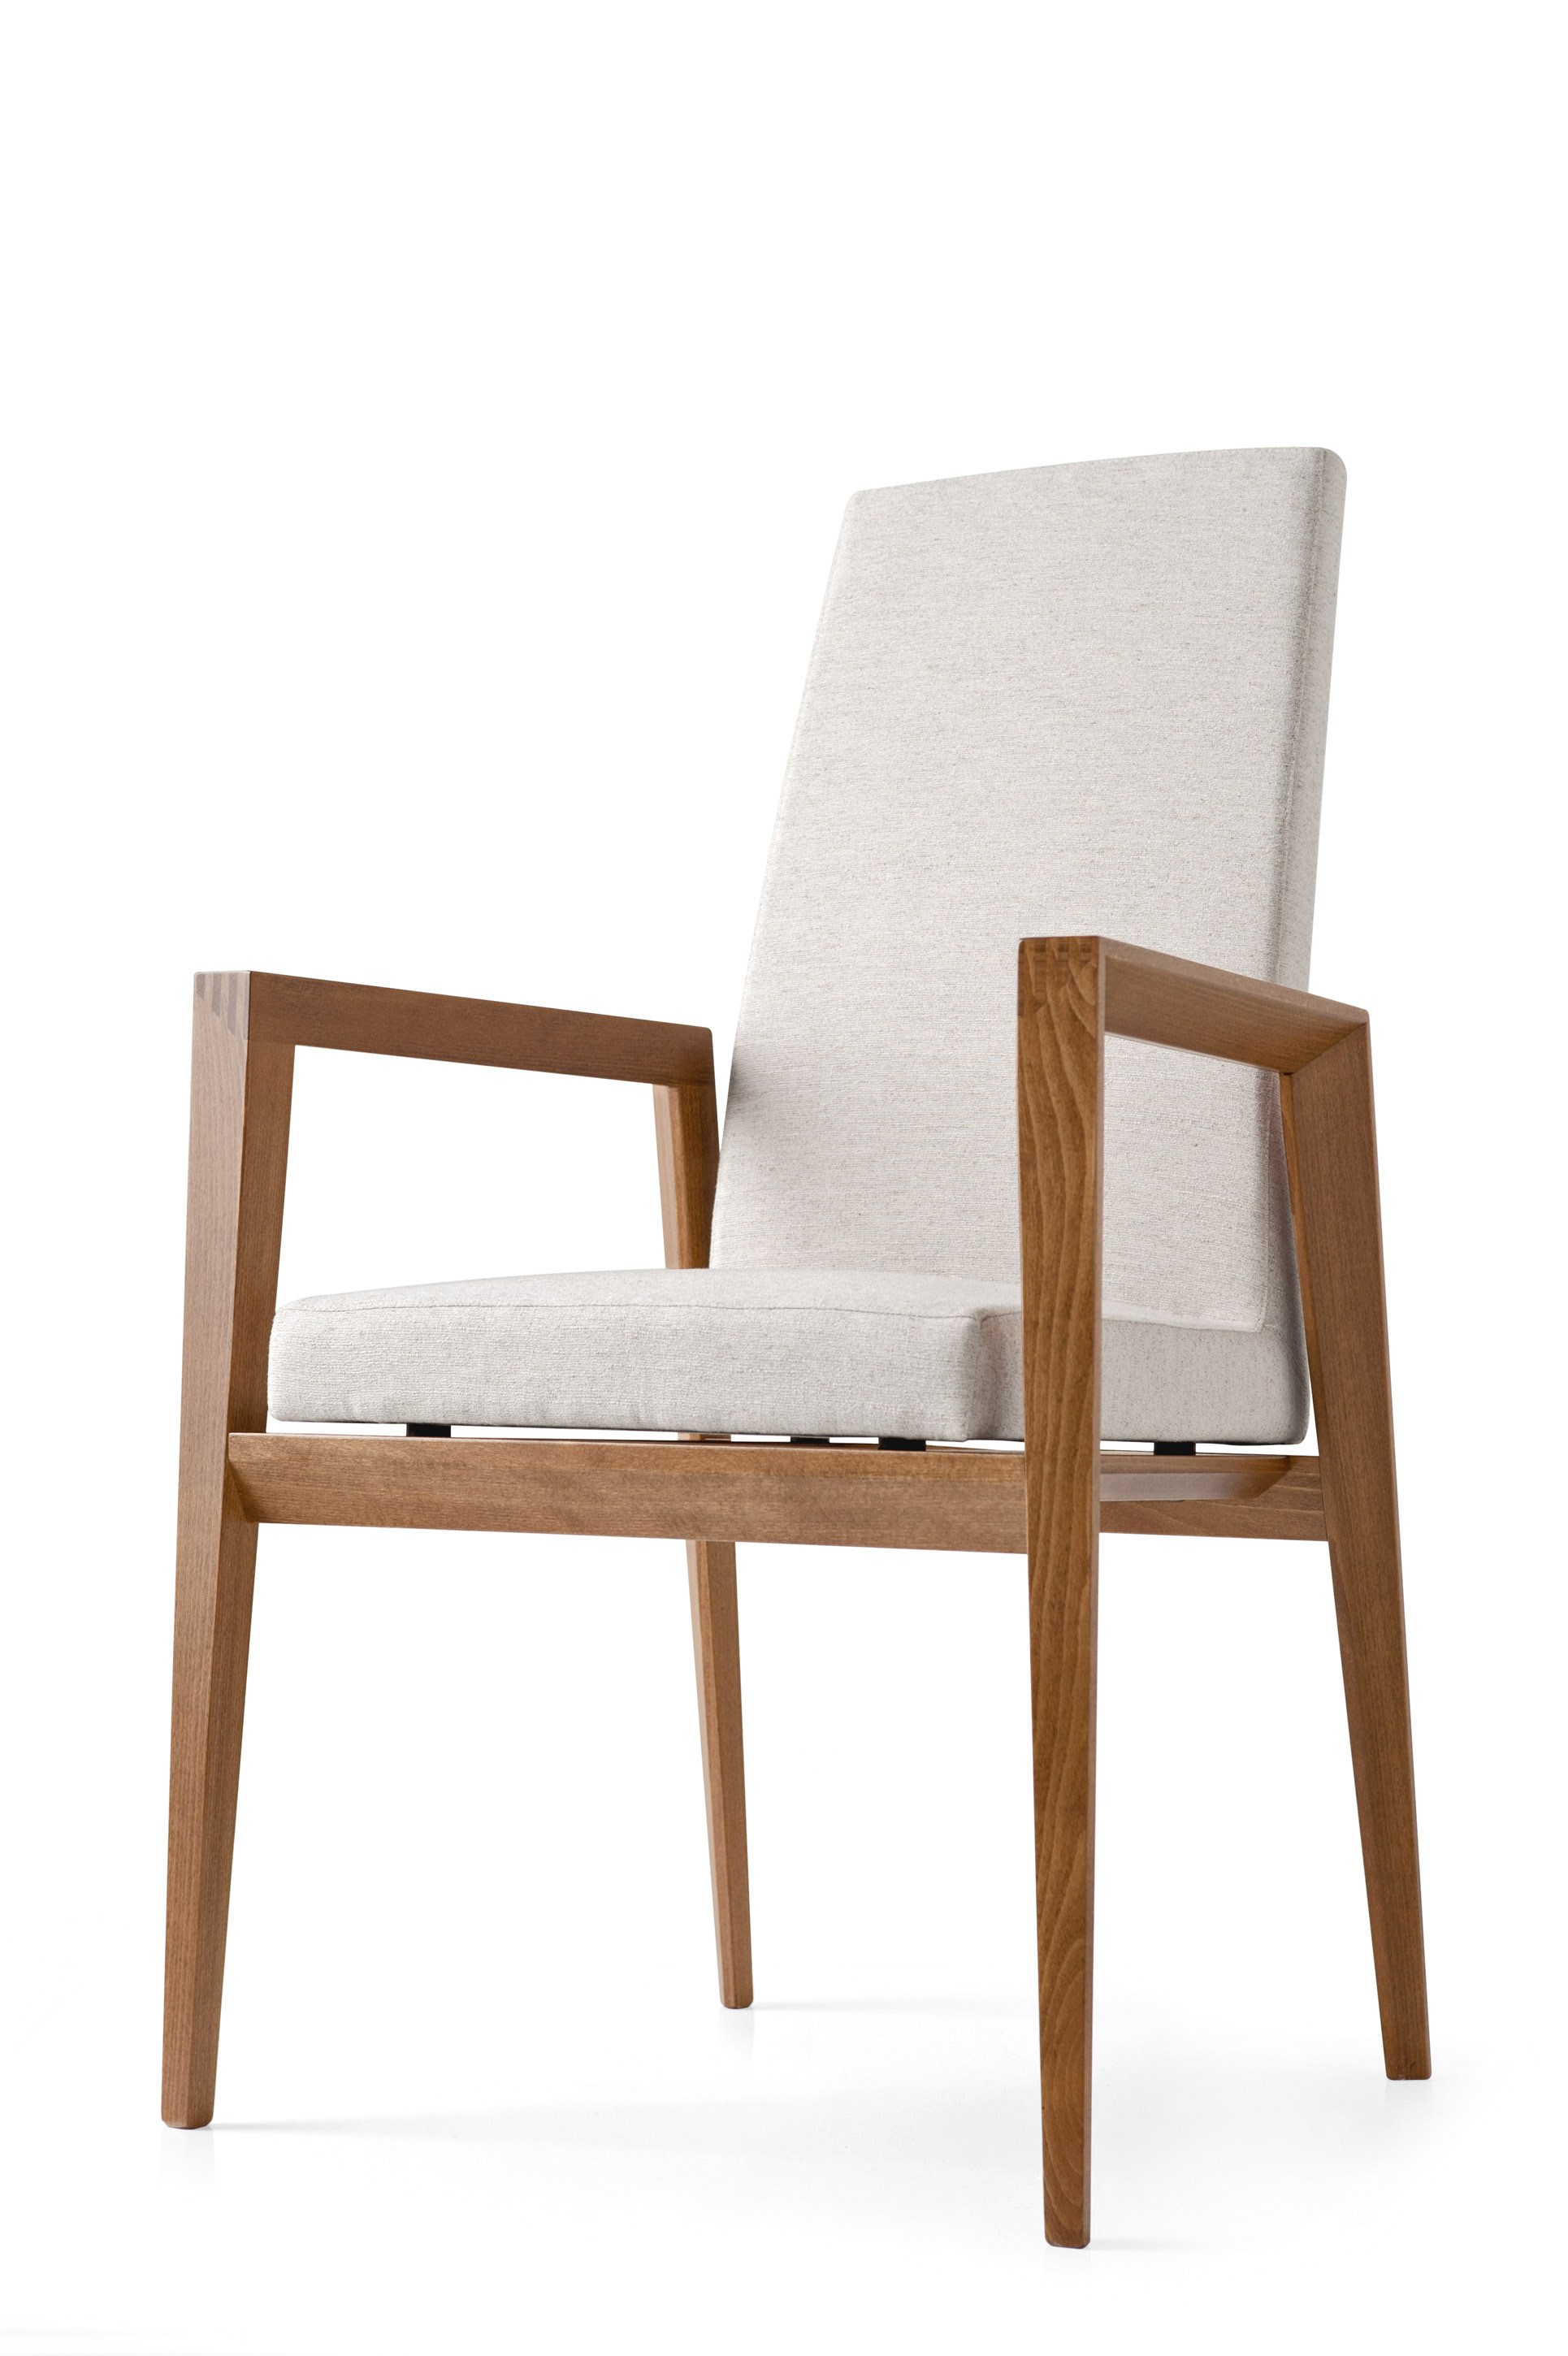 Bess Silla Con Brazos By Calligaris Dise O S T C